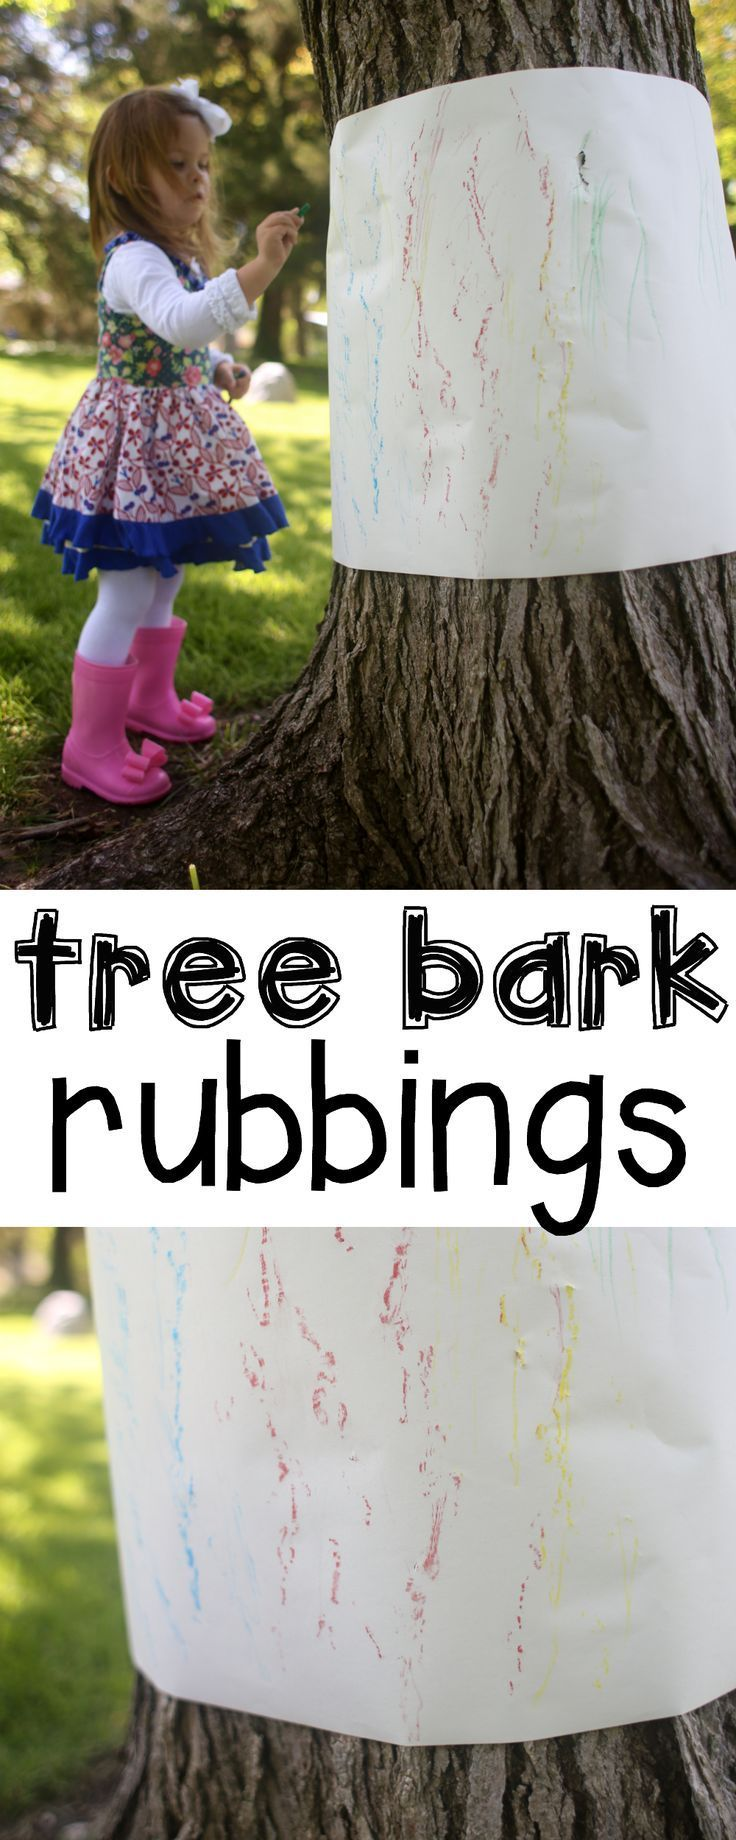 Tree Bark Rubbings:  Such a simple and interactive outdoor activity for toddlers... - http://www.oroscopointernazionaleblog.com/tree-bark-rubbings-such-a-simple-and-interactive-outdoor-activity-for-toddlers/